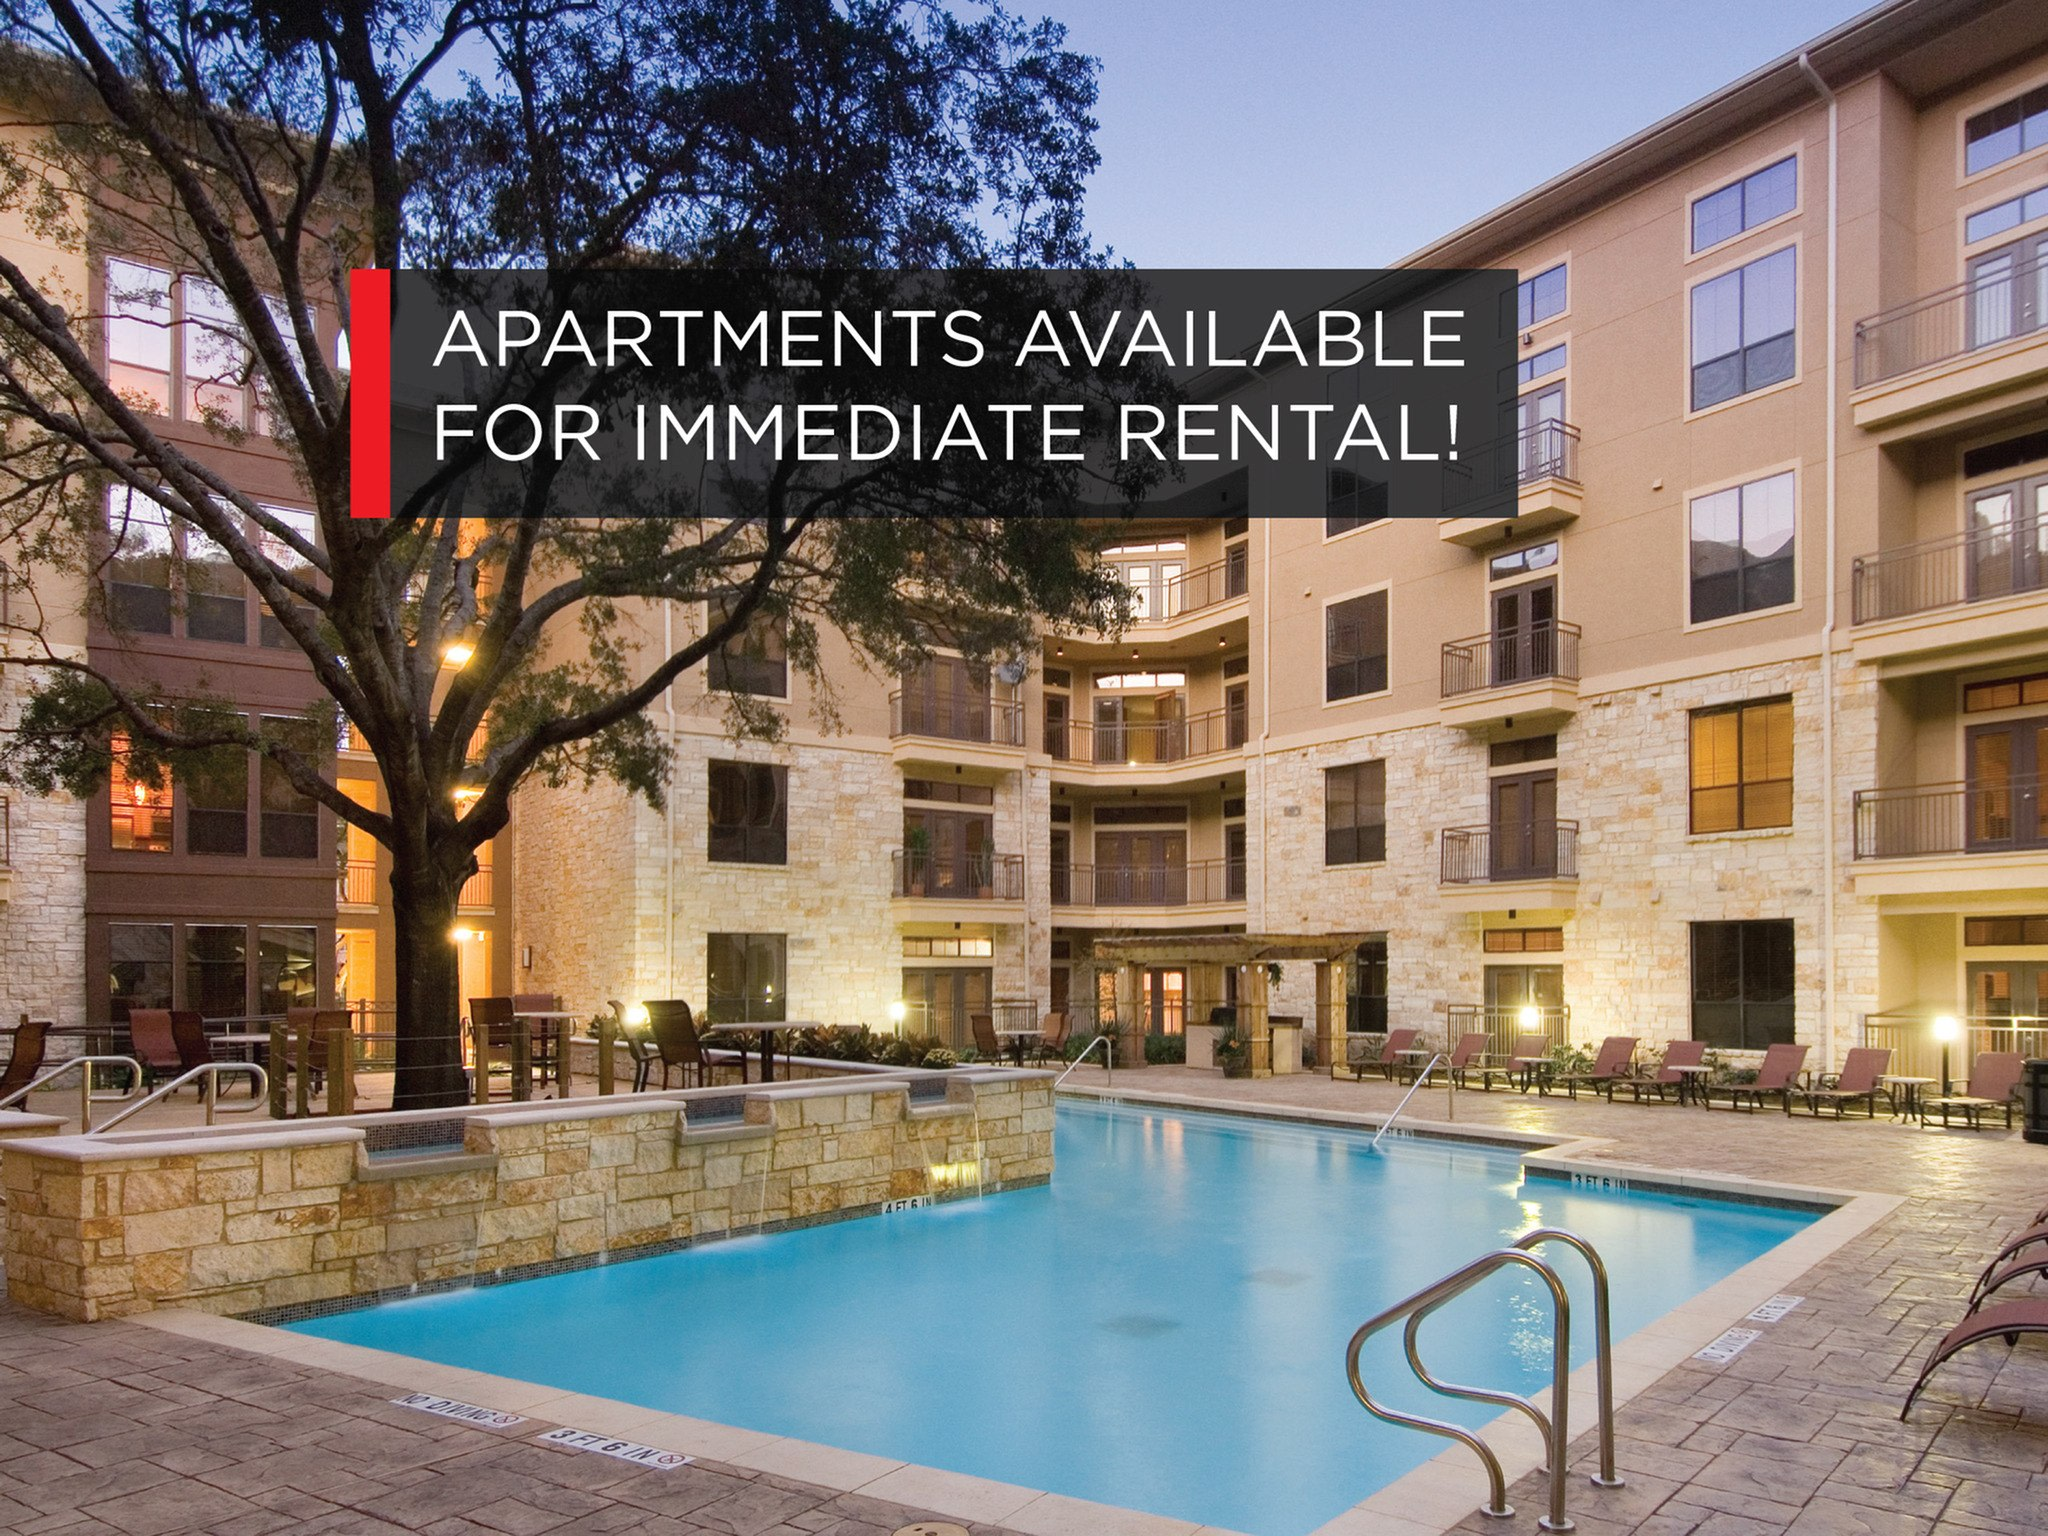 20 Best Apartments In Meadows Place, TX (with pictures)! - p. 3